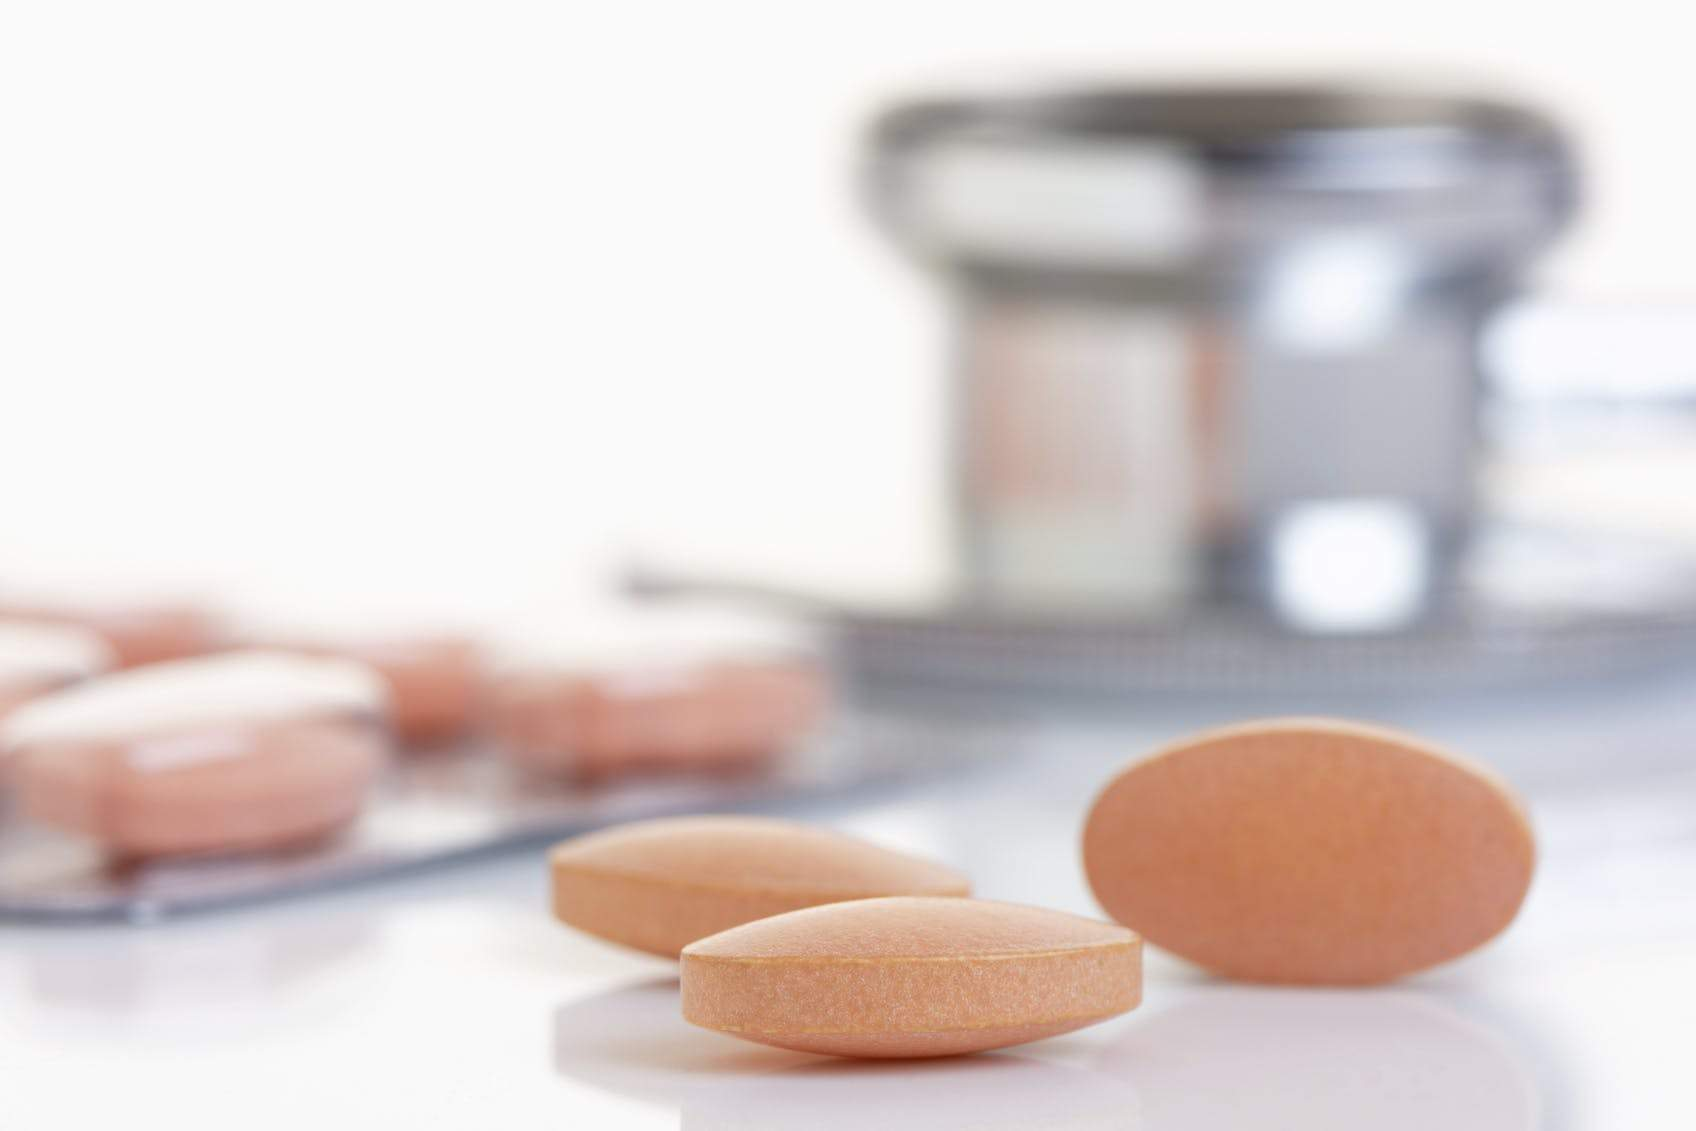 Are Cholesterol-Lowering Statin Medications a Scam?